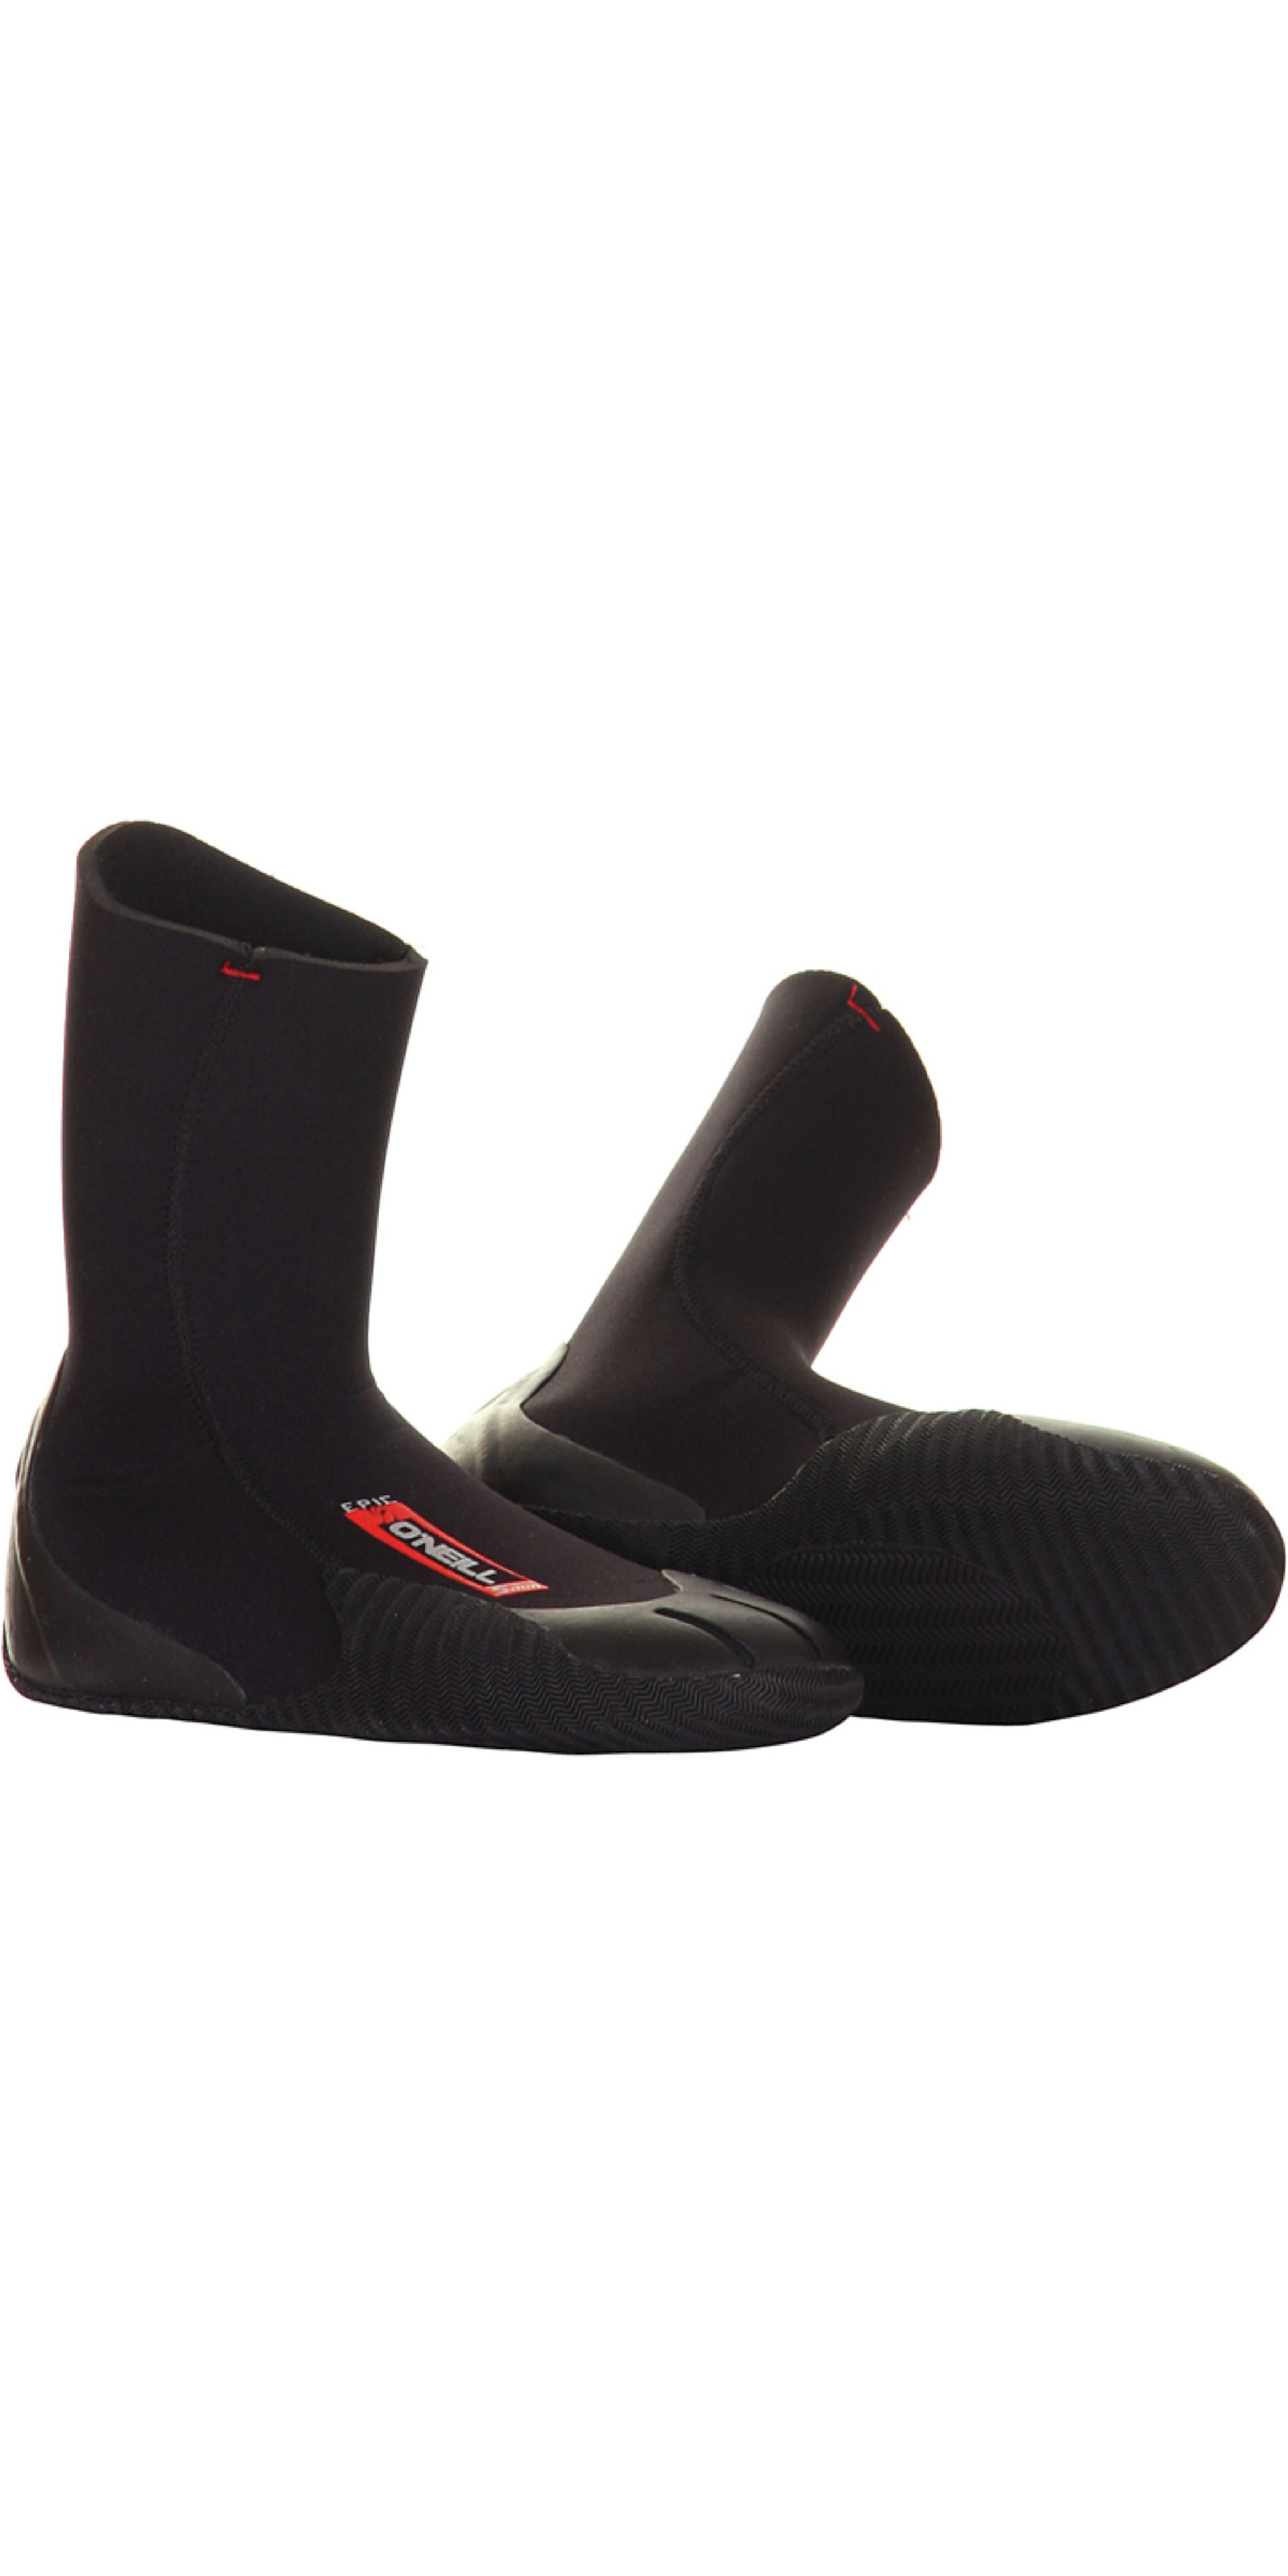 2018 O'Neill Youth / Junior Epic 5mm Round Toe Boots 4067